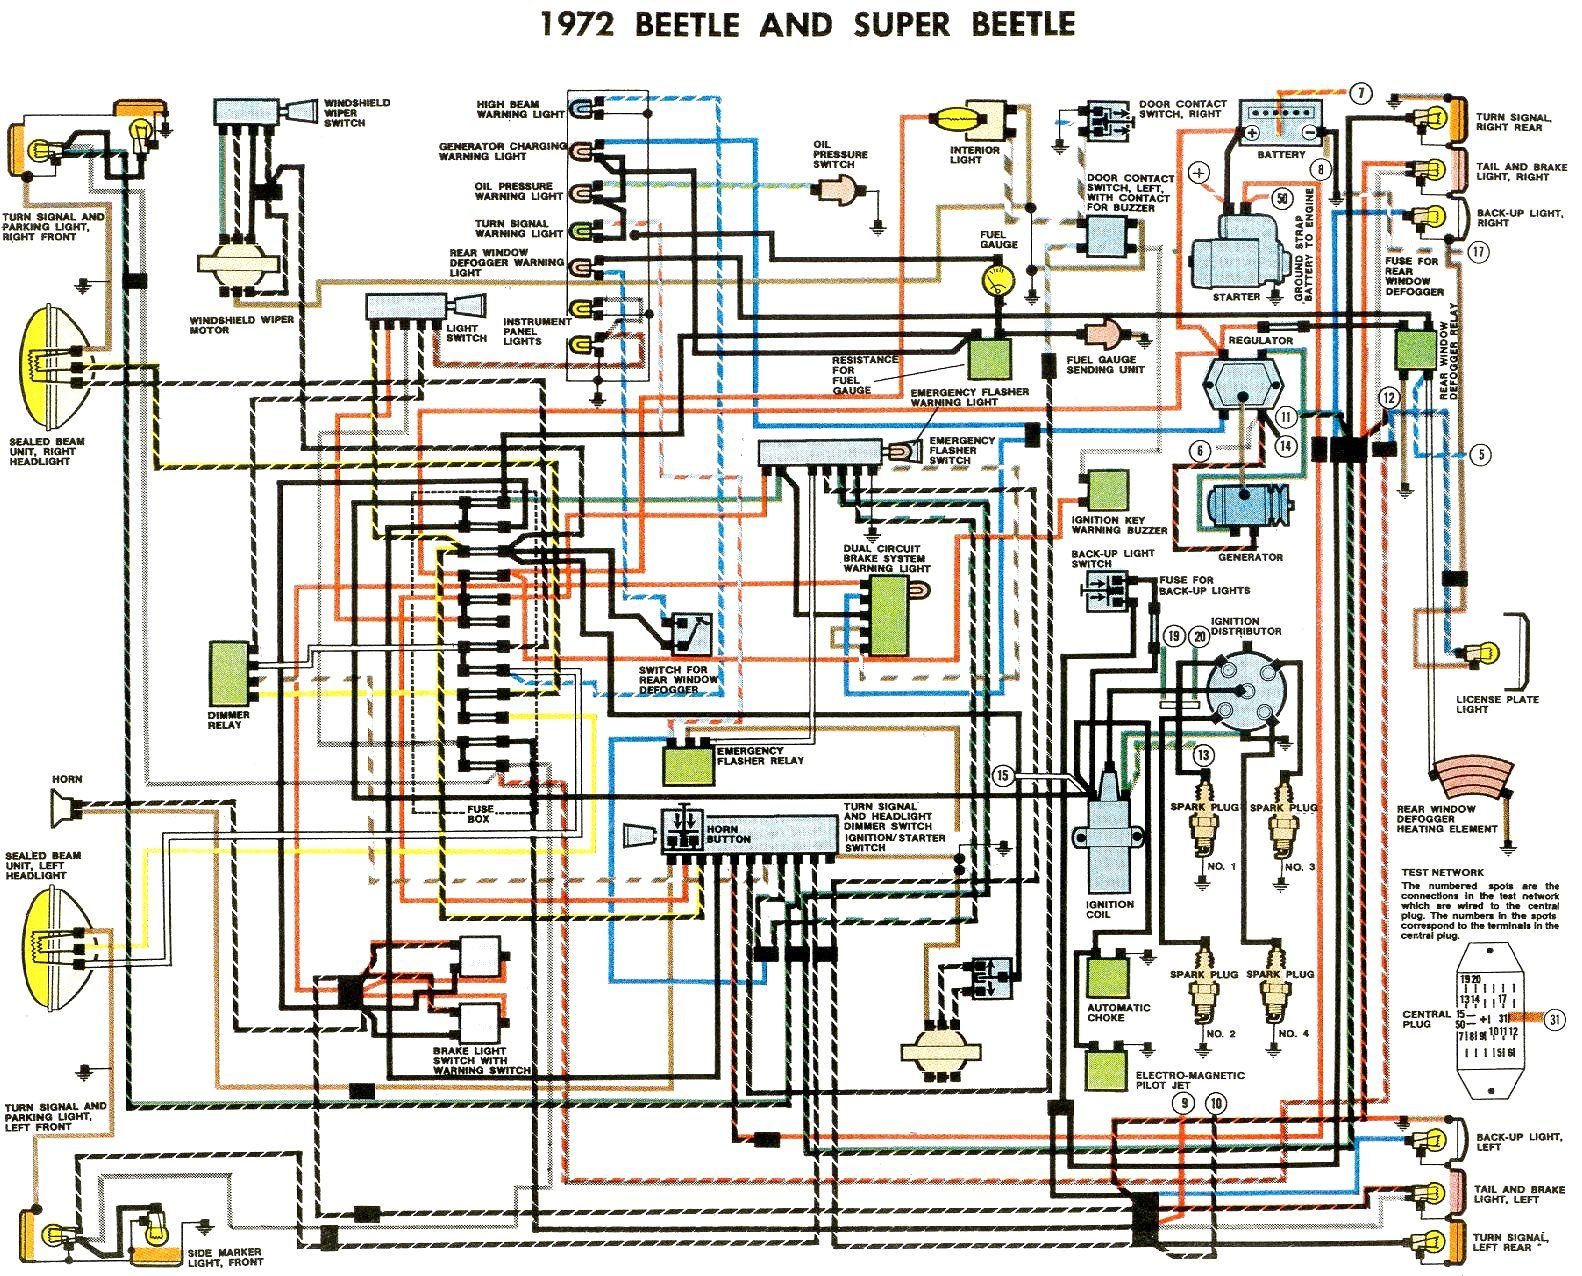 1972 Beetle Wiring Diagram | TheGoldenBug.com | Vw super beetle, Diagram  design, Volkswagen carPinterest